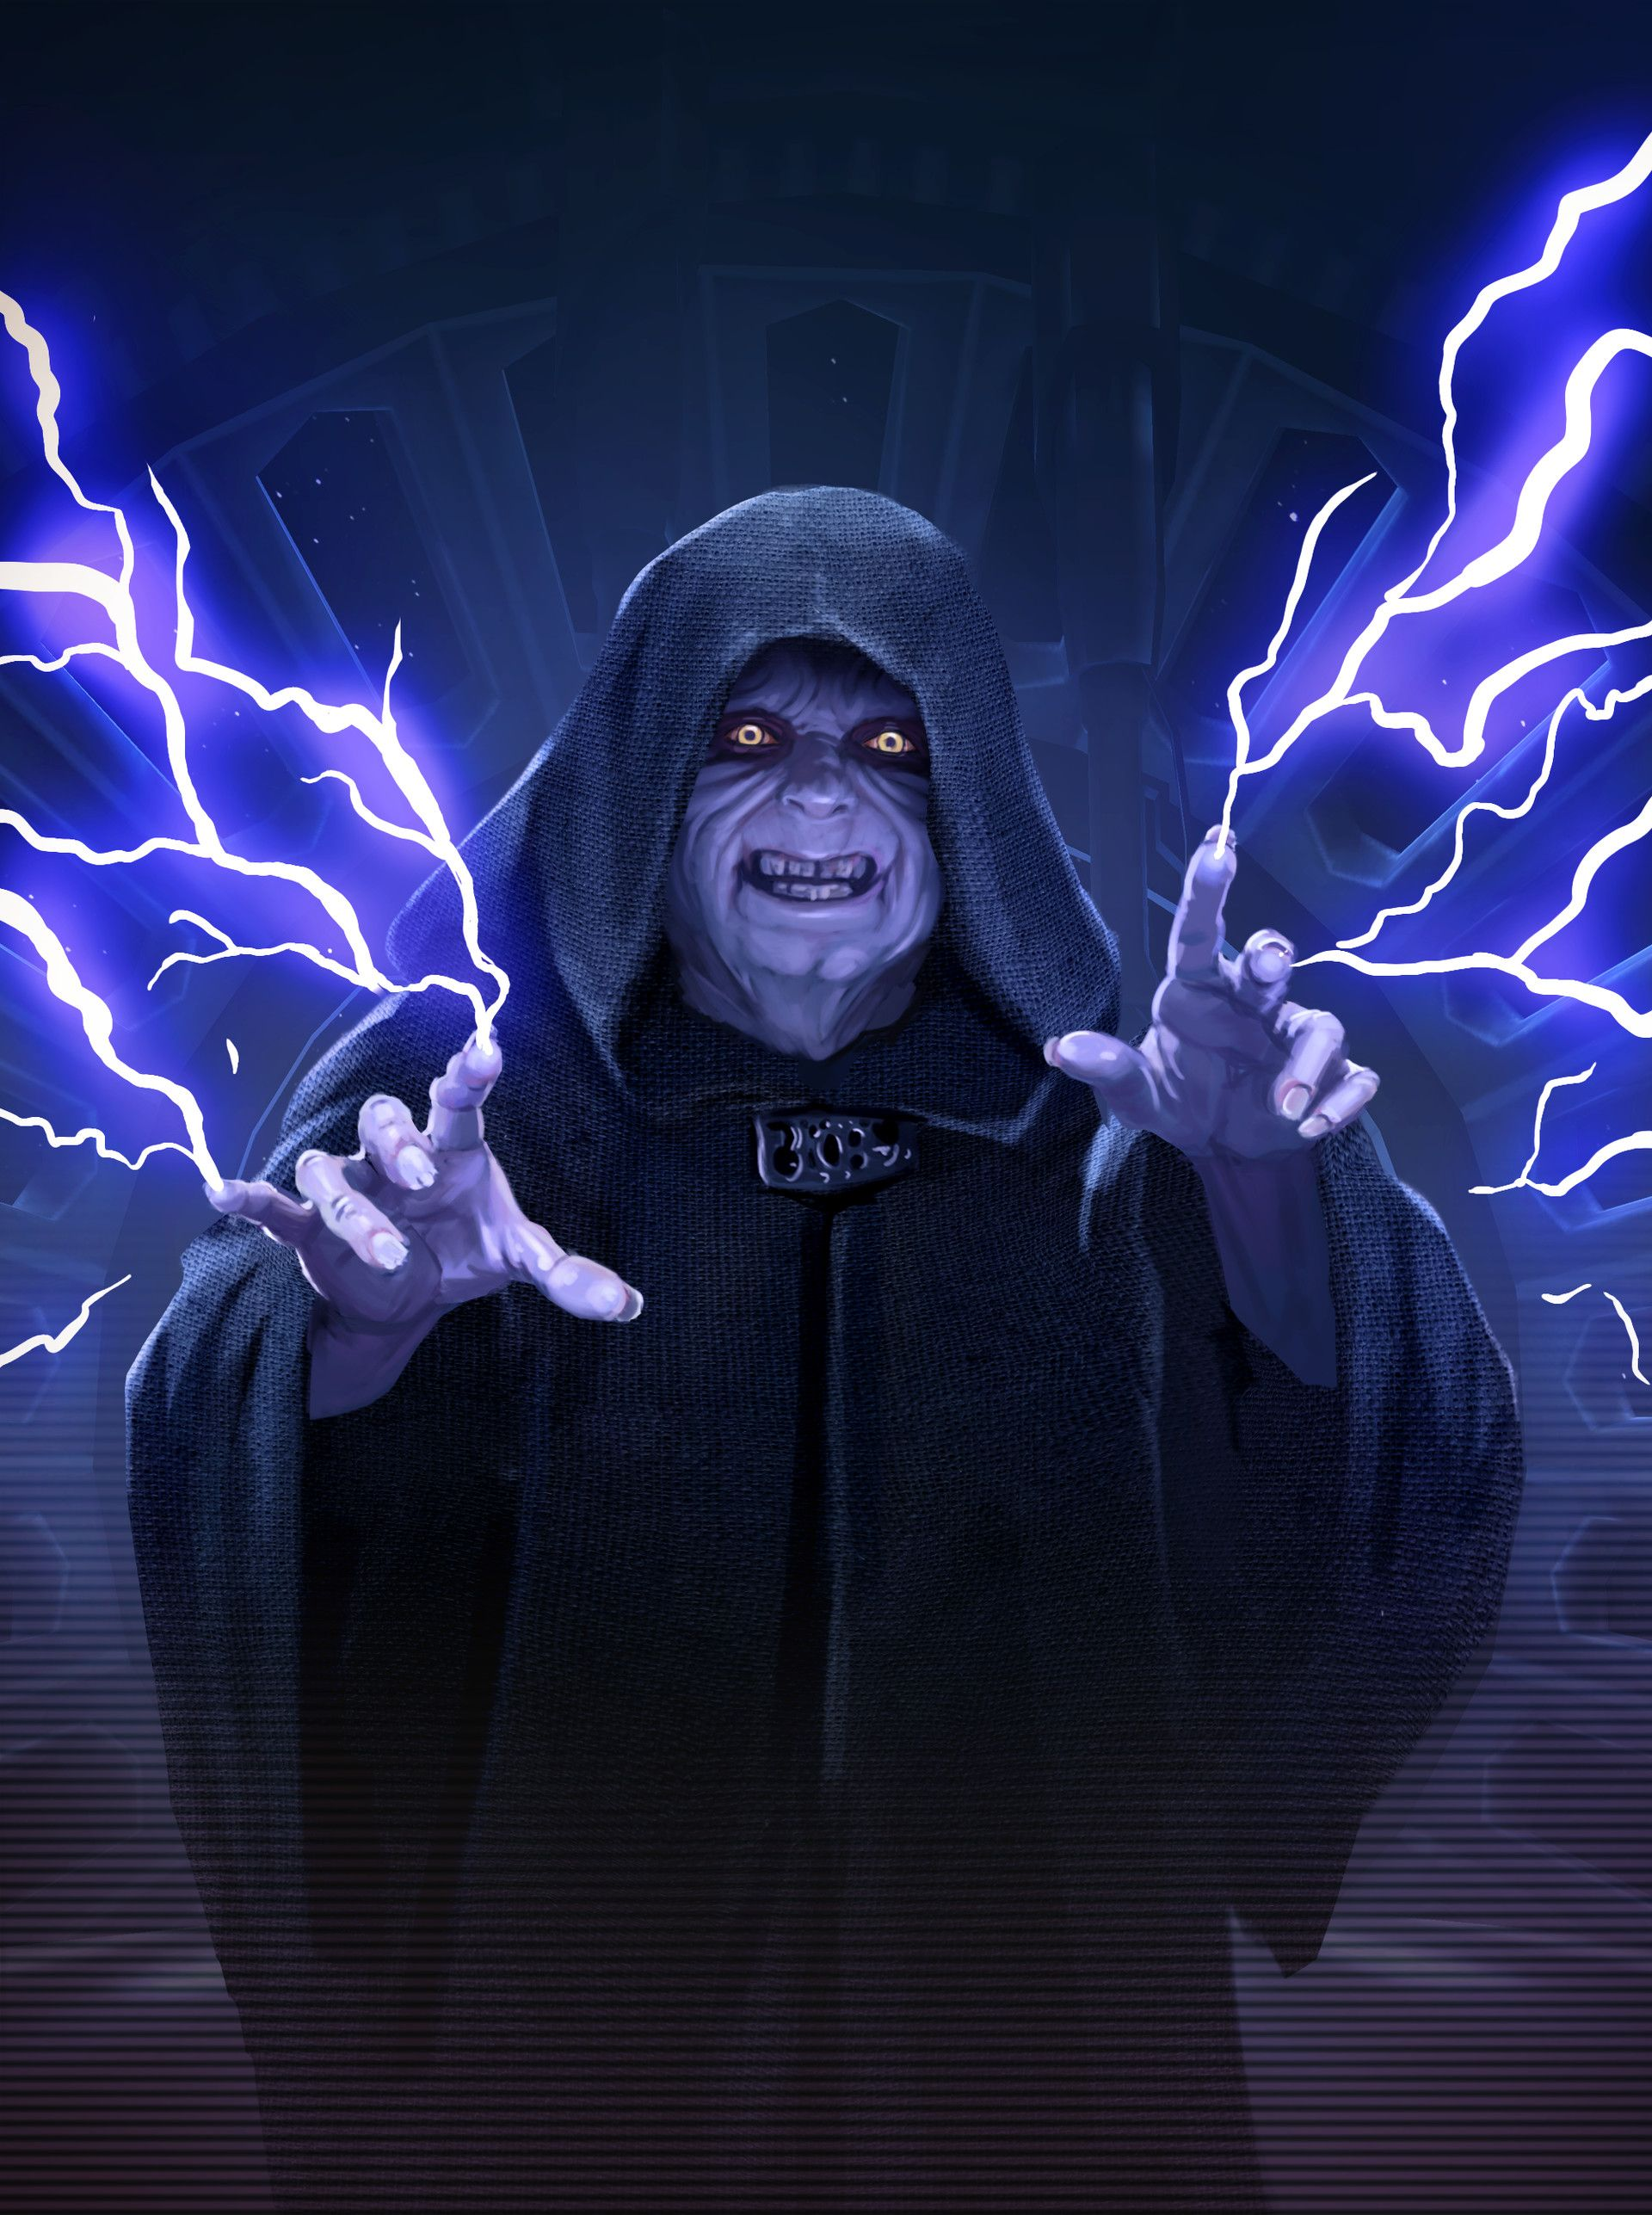 Sheev Palpatine Wallpapers Posted By Michelle Peltier